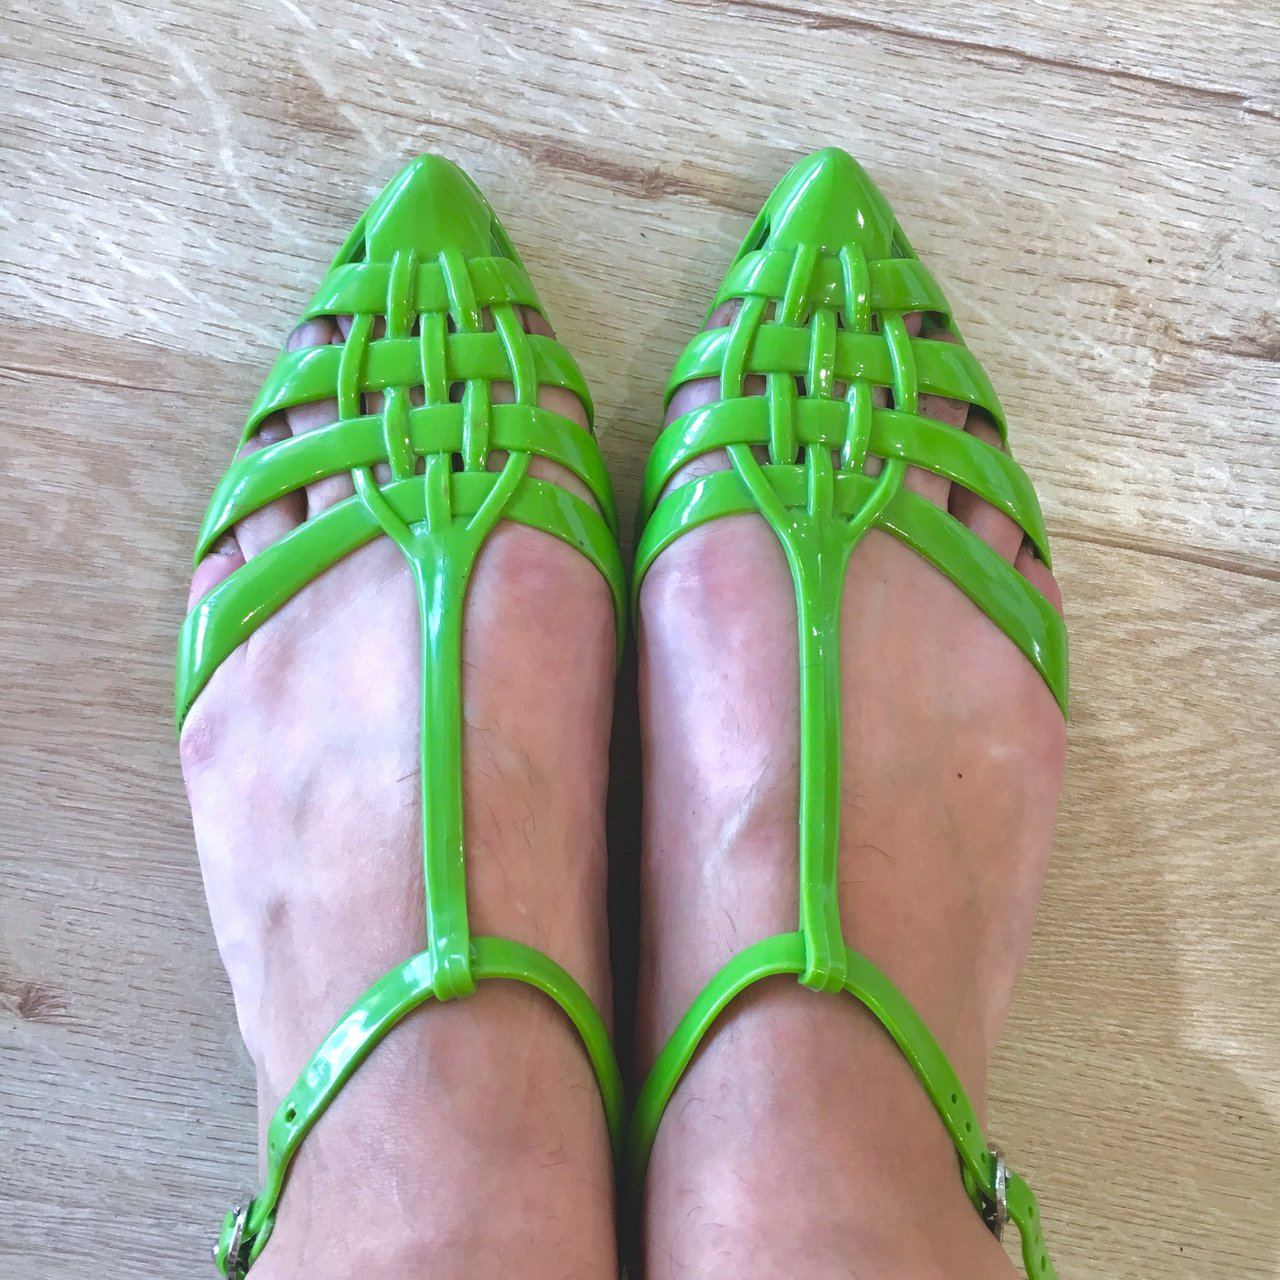 88f593541dfb Cute green jelly shoes! 90s